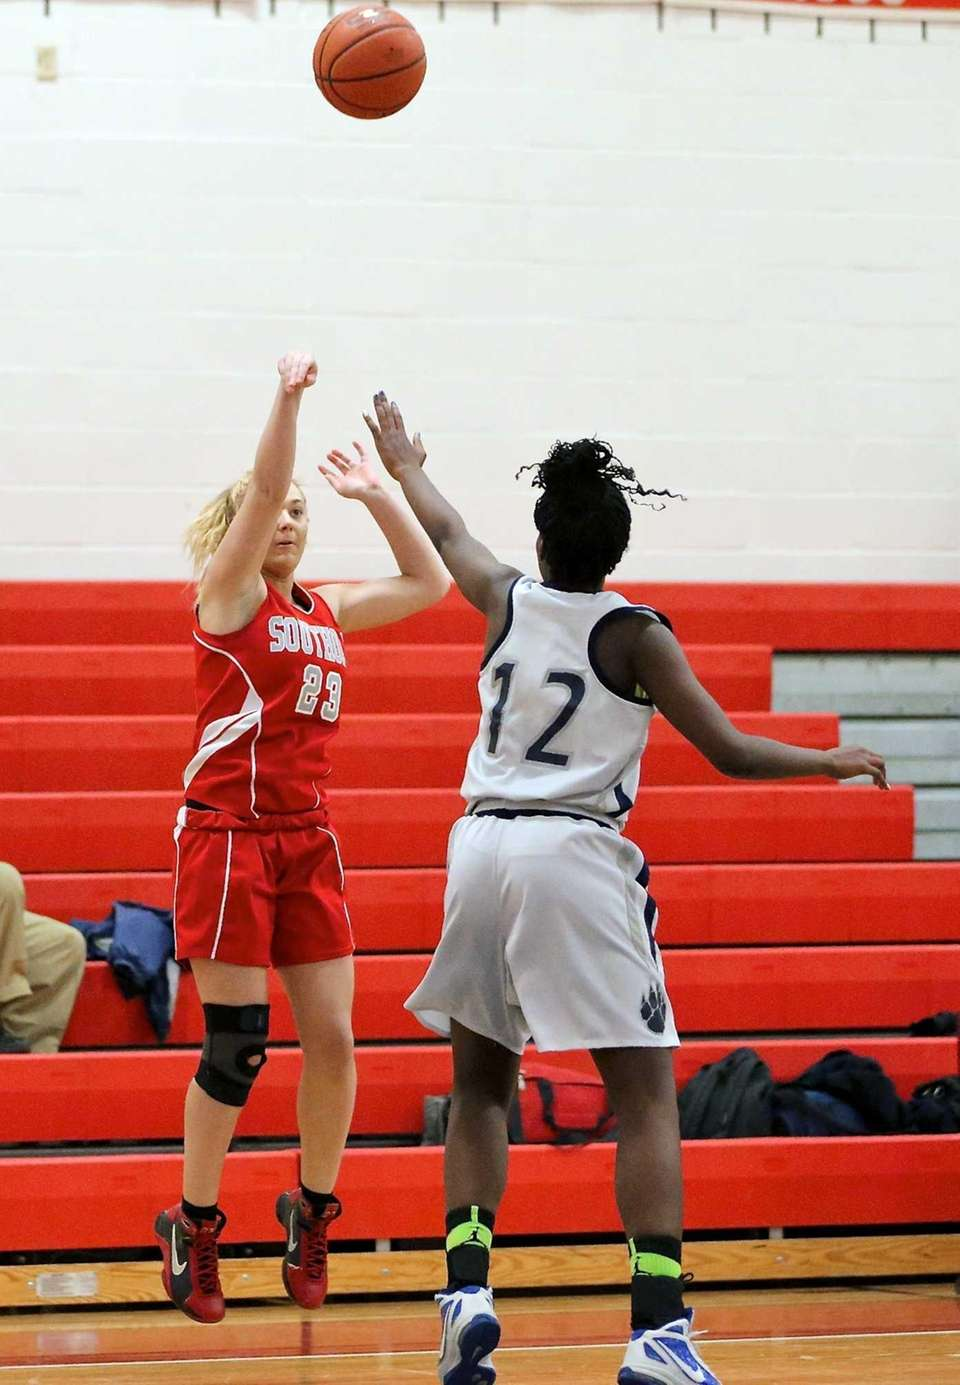 Southold's Michaela Christman puts up the shot against